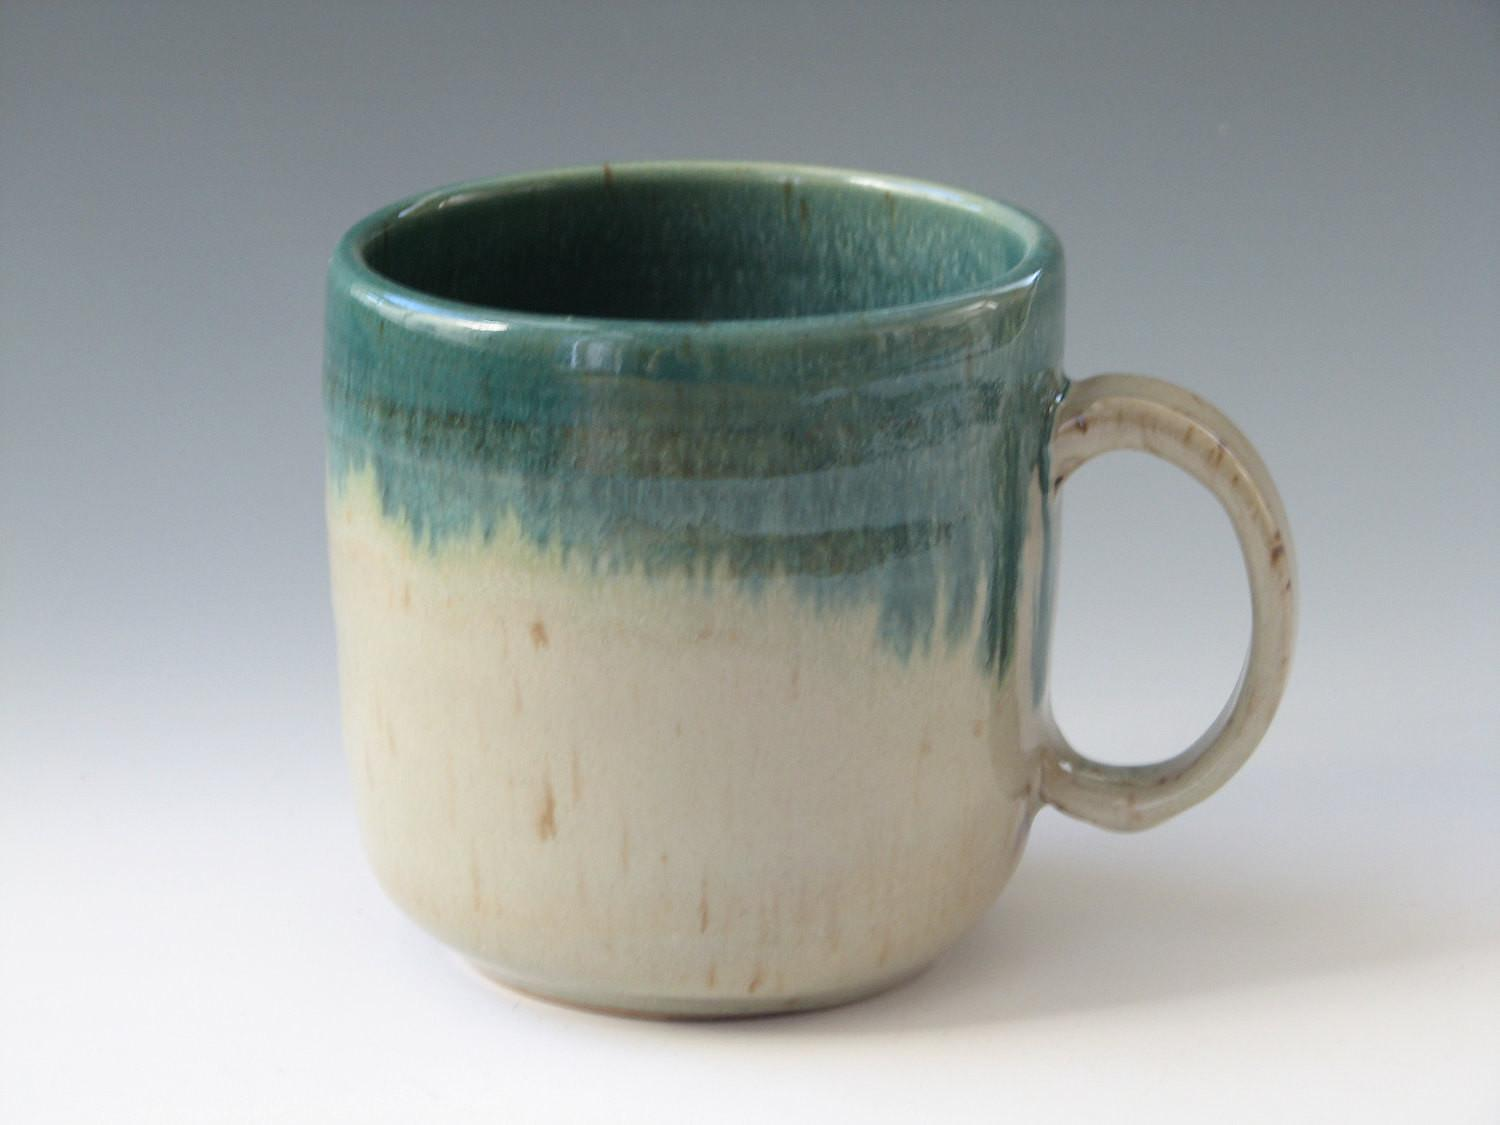 Coffee Mug Handmade Stoneware Pottery Olive Green Ceramic